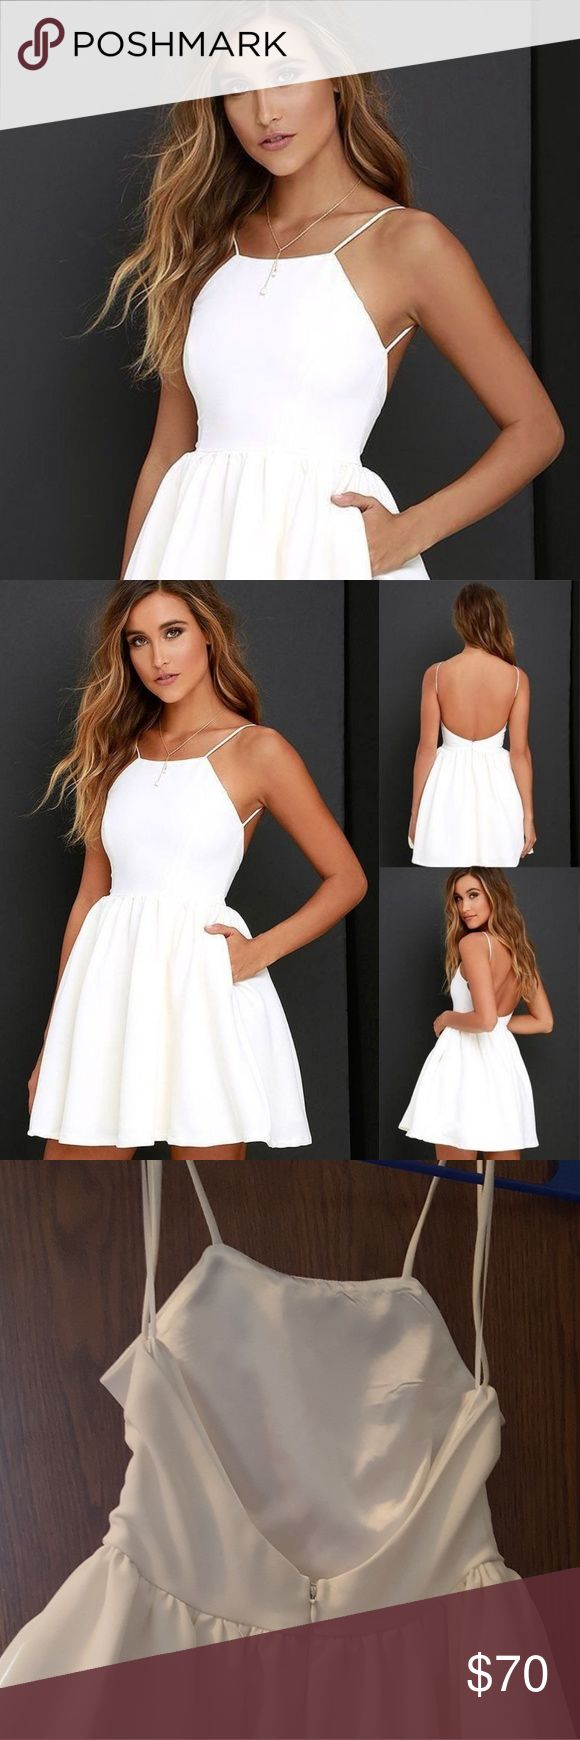 White Skater Dress White Lulus dress. Size SMALL.Worn once for graduation. NO STAINS. lulus Dresses